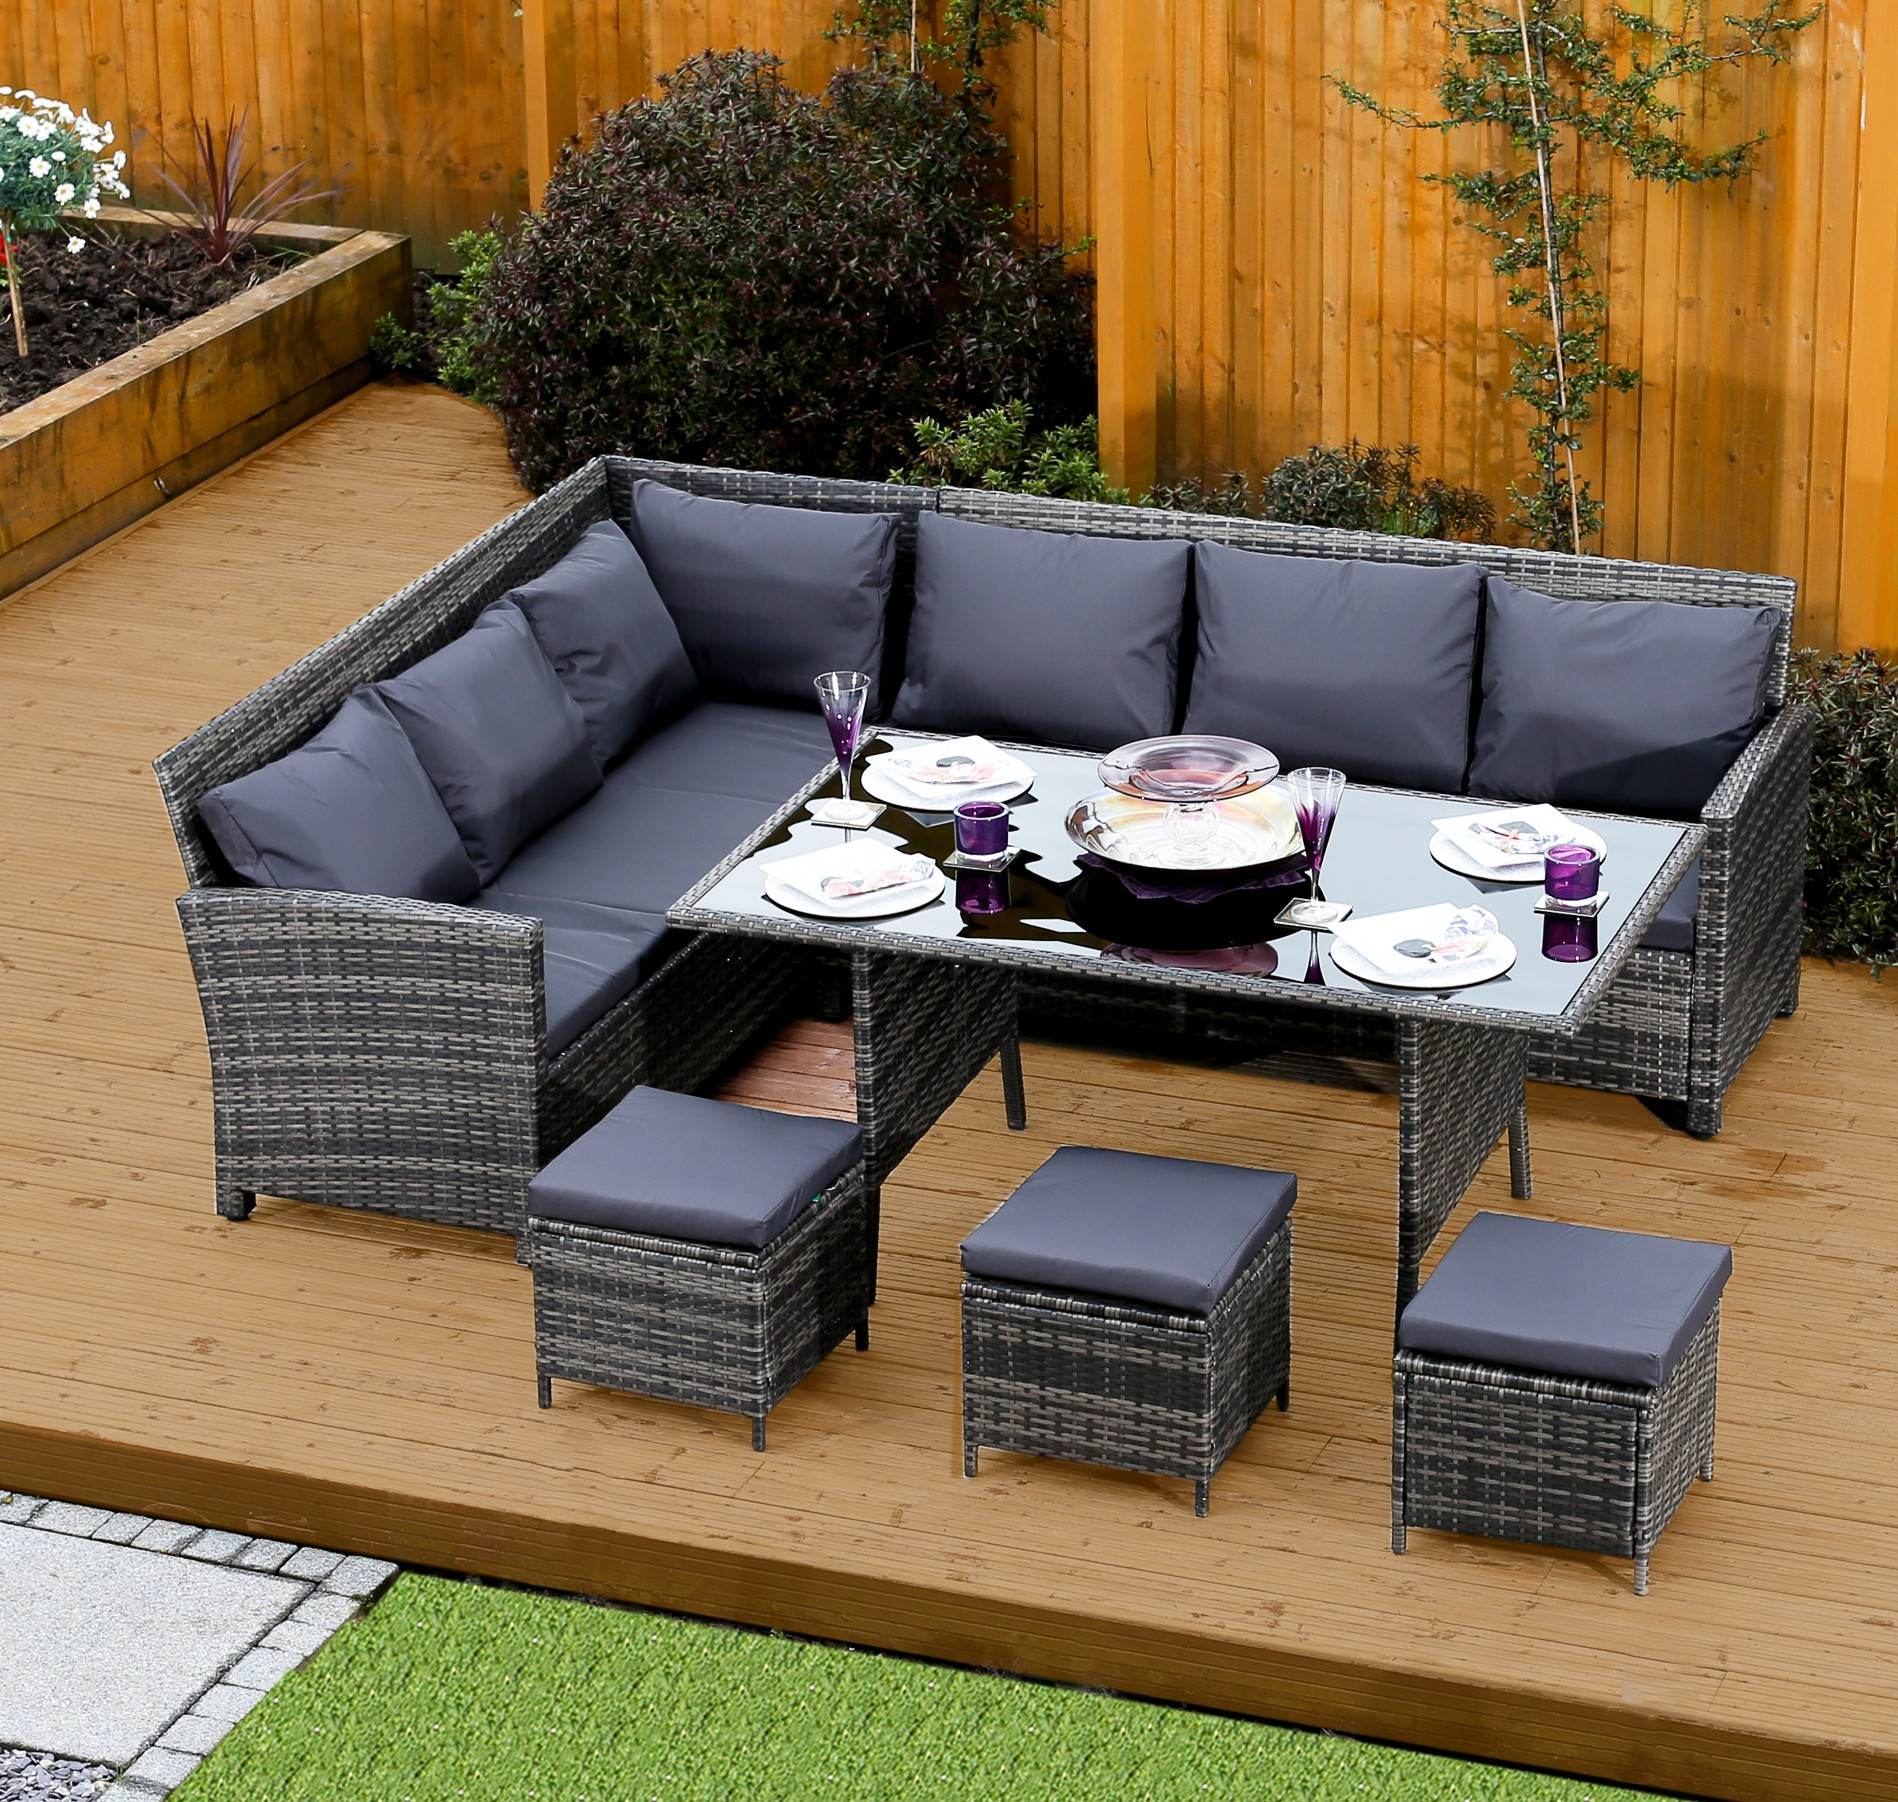 Rattan 9 Seater Corner Sofa 9 Seater Rattan Corner Garden Sofa And Dining Table Set In